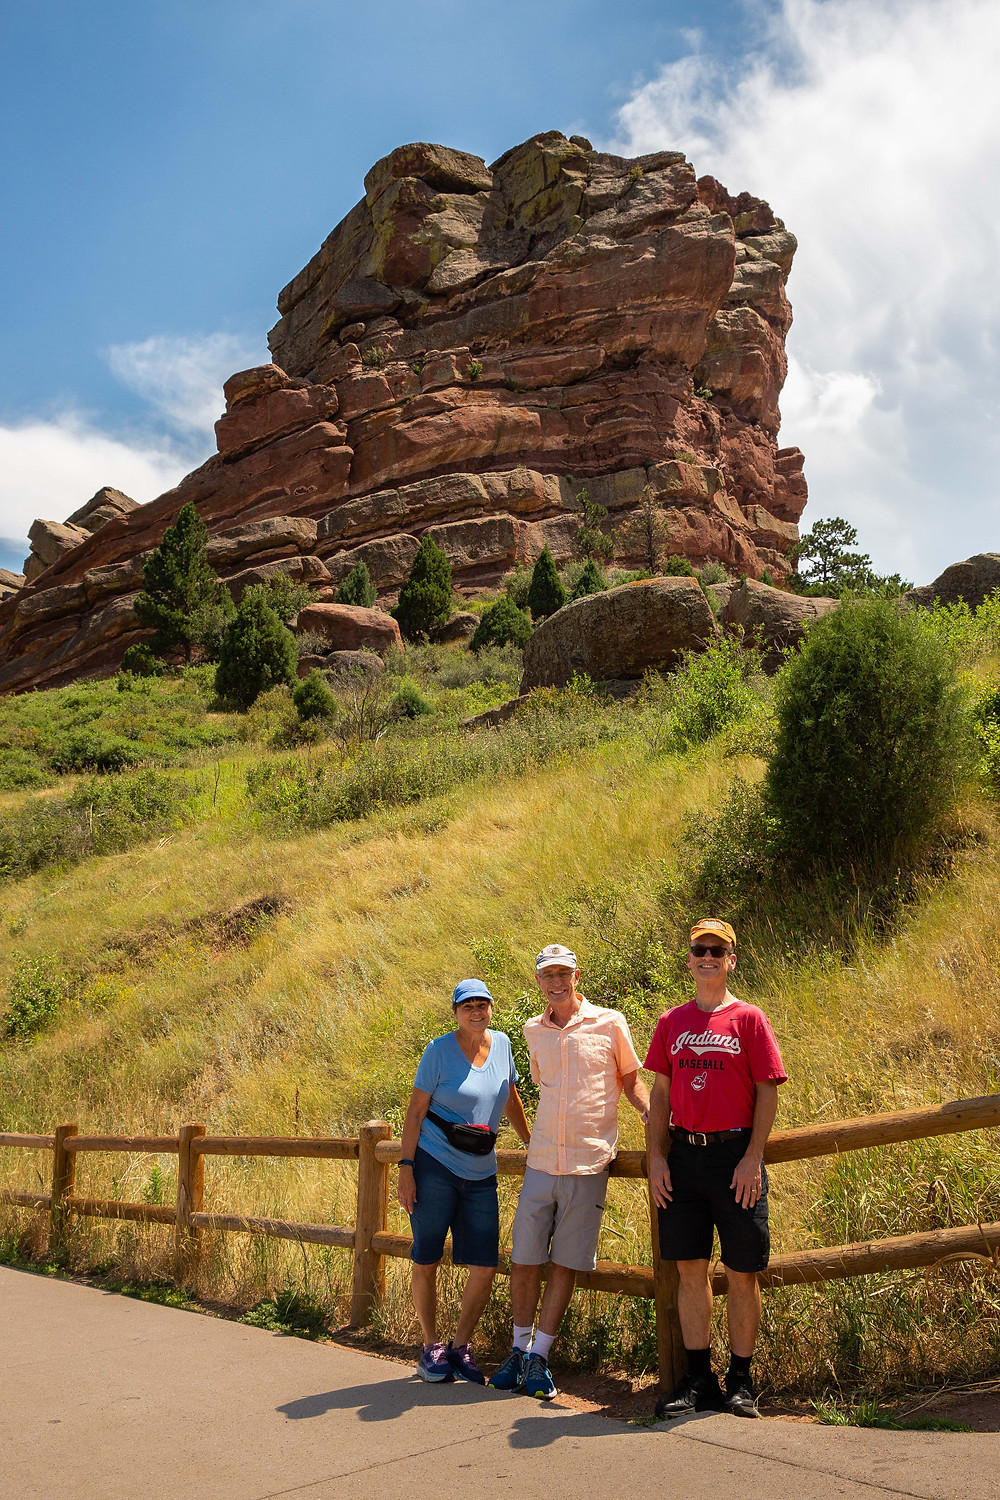 Red Rocks Amphitheatre is an open-air amphitheatre built into a rock structure near Morrison, Colorado, 10 miles (16 km) west of Denver.